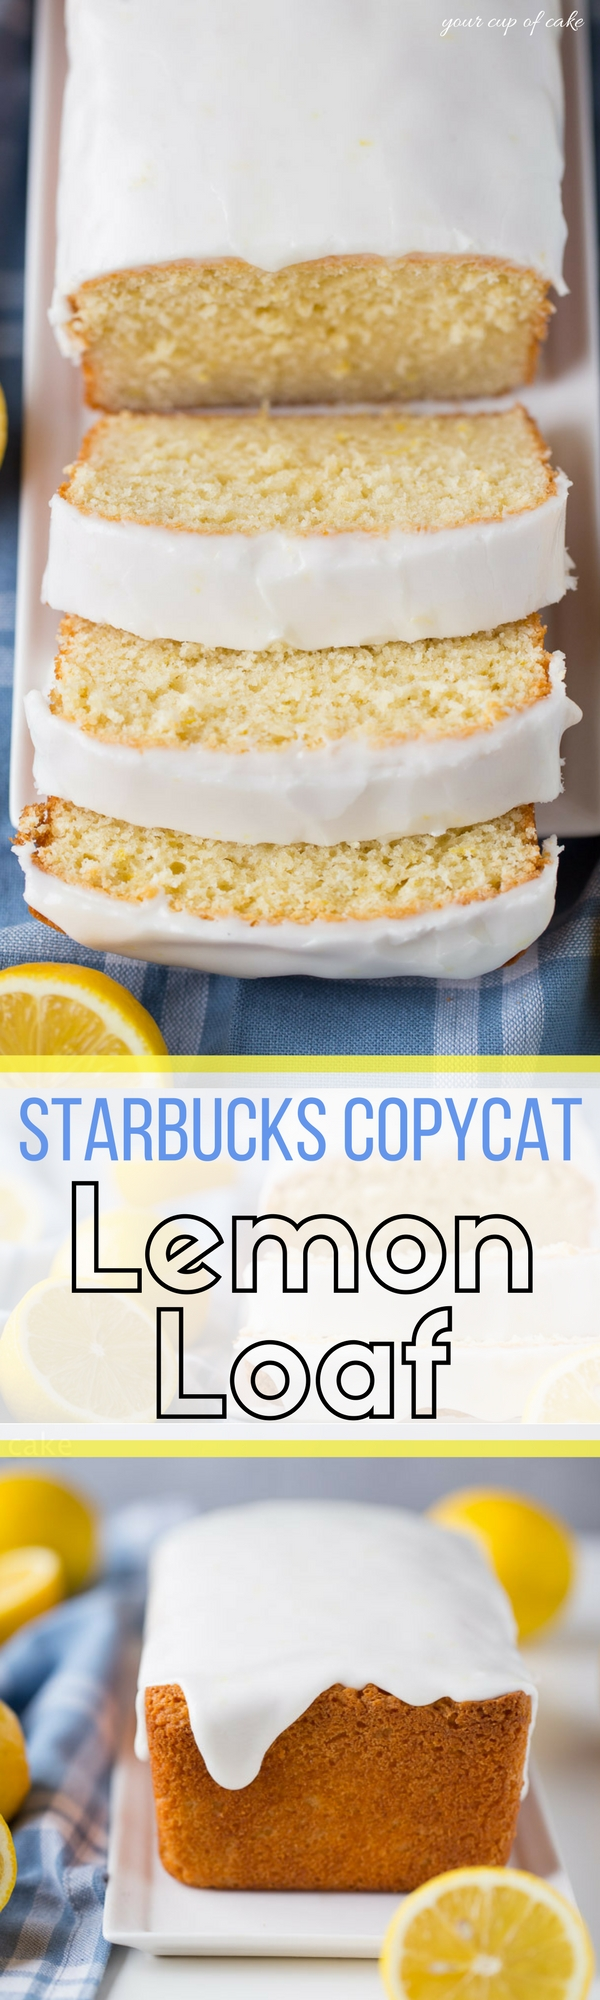 LOVE this Copycat Starbucks Lemon Loaf Recipe